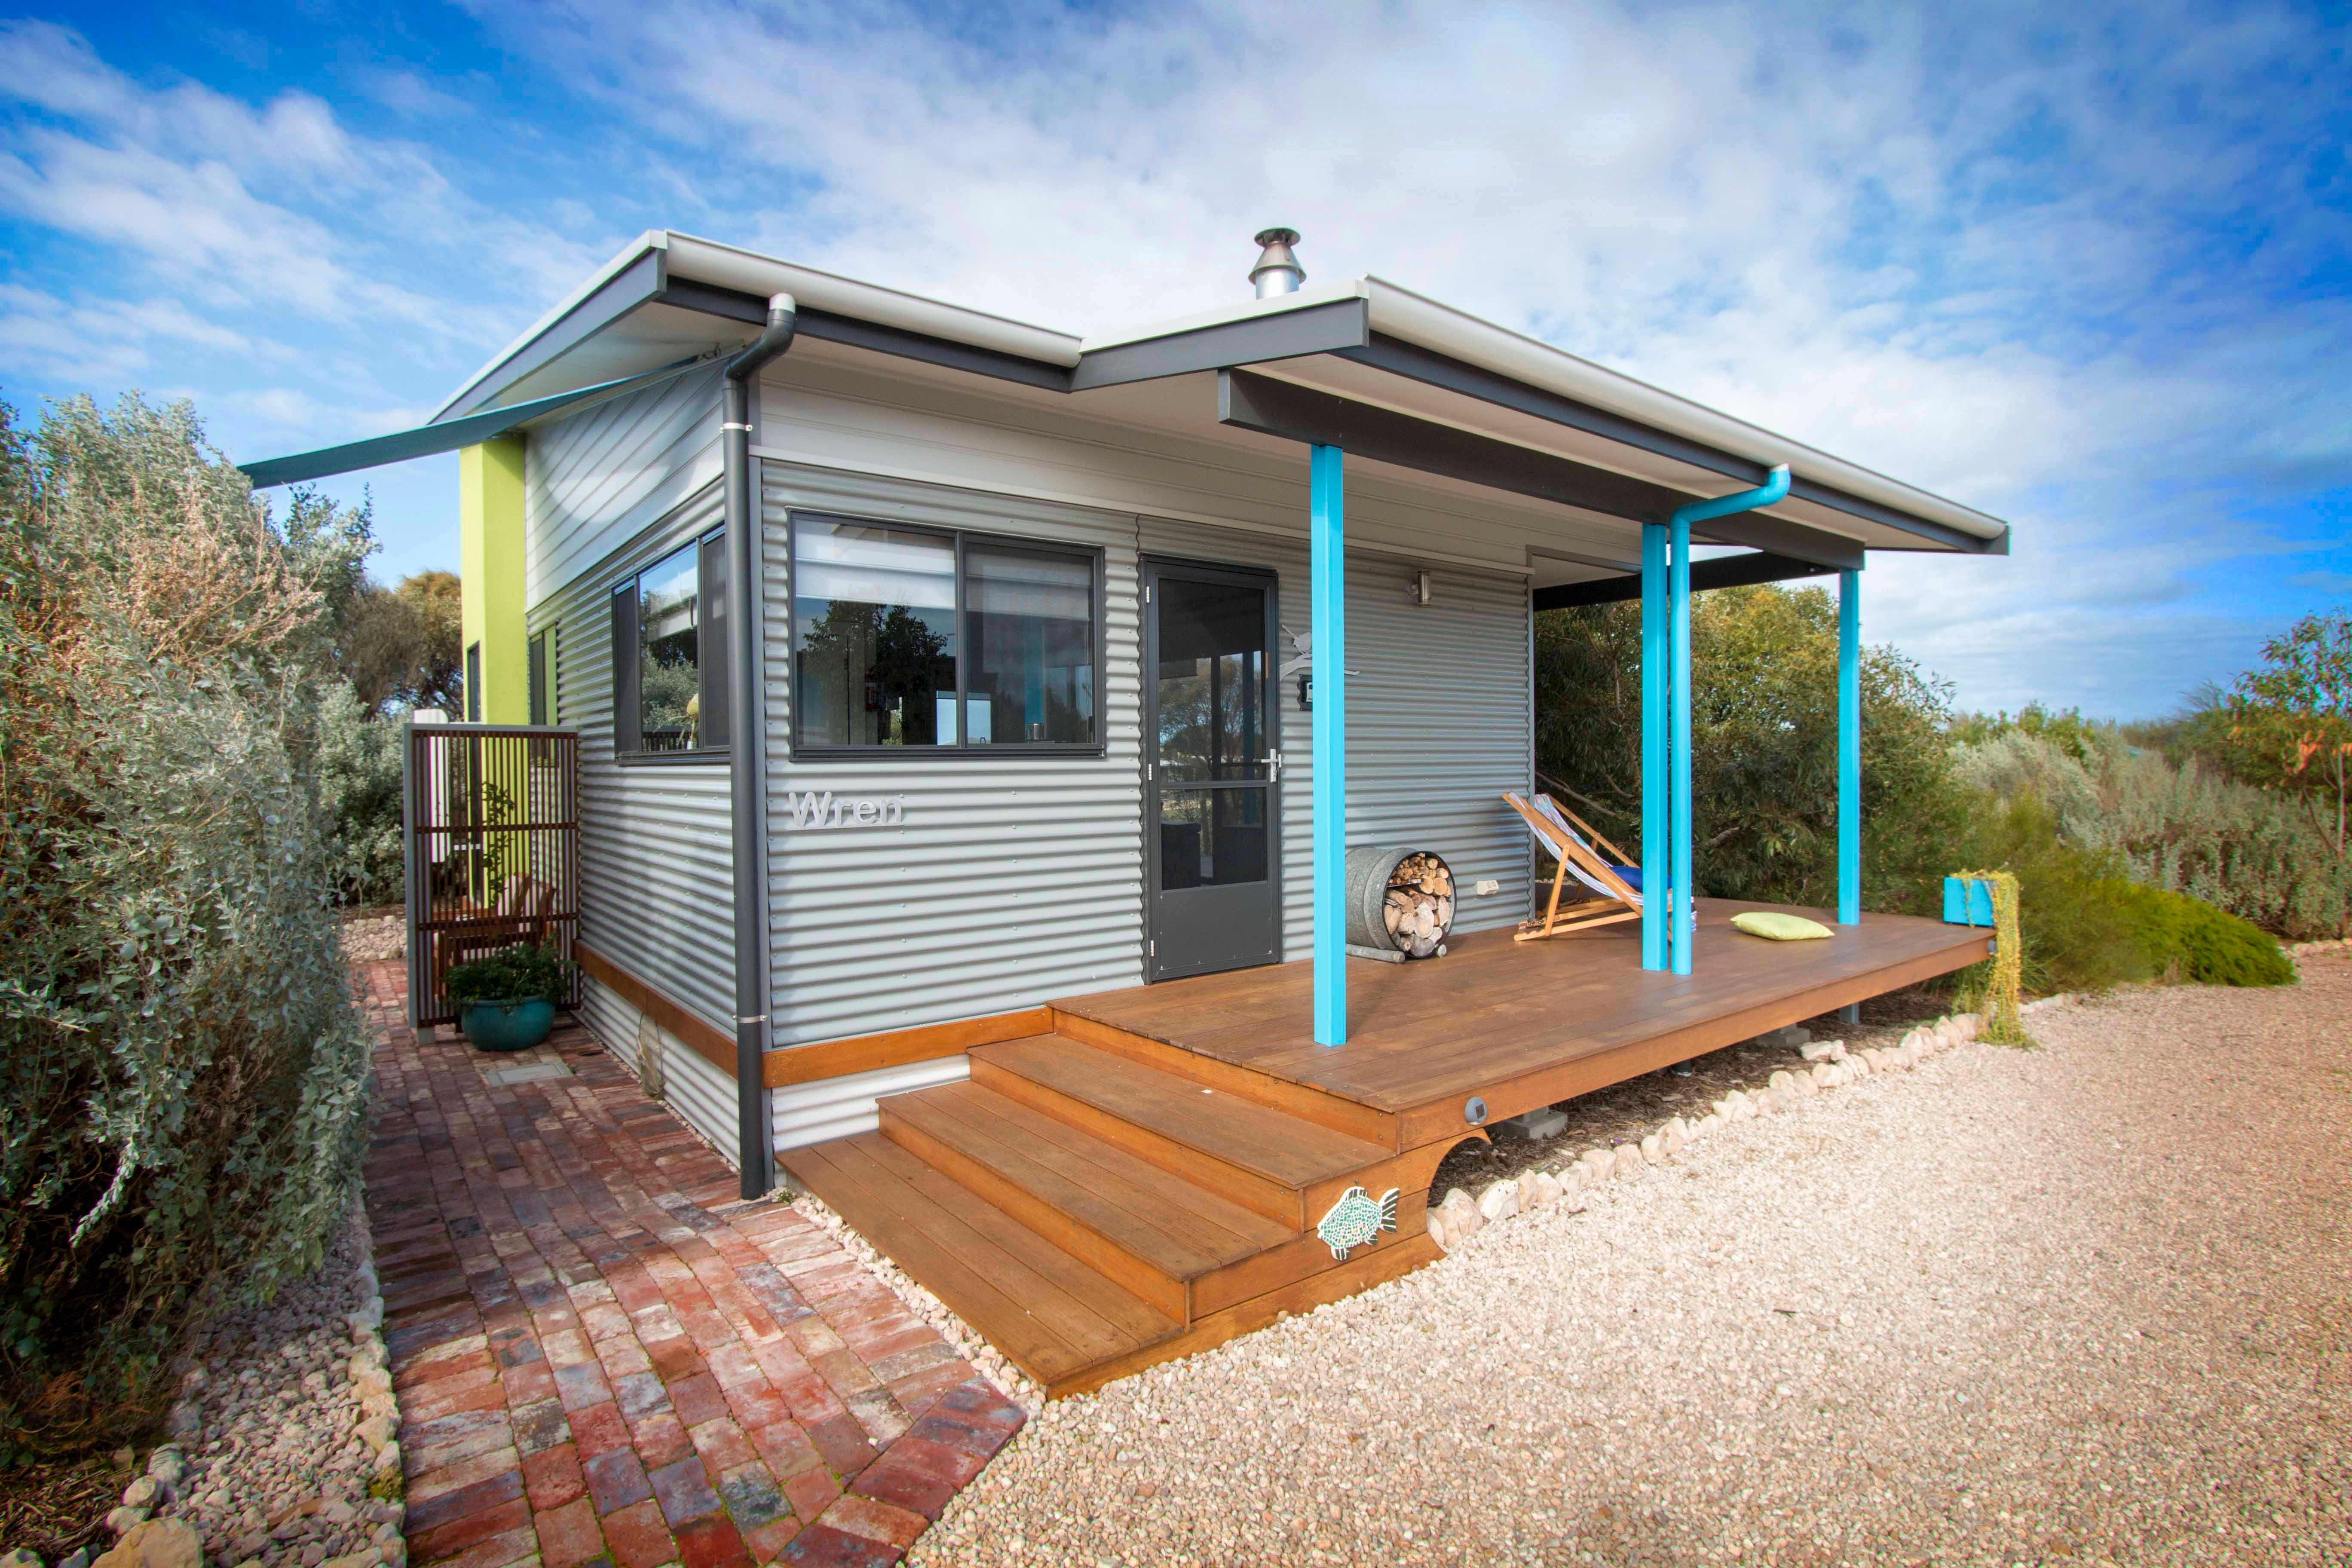 Coorong Cabins - Wren Cabin - Coogee Beach Accommodation